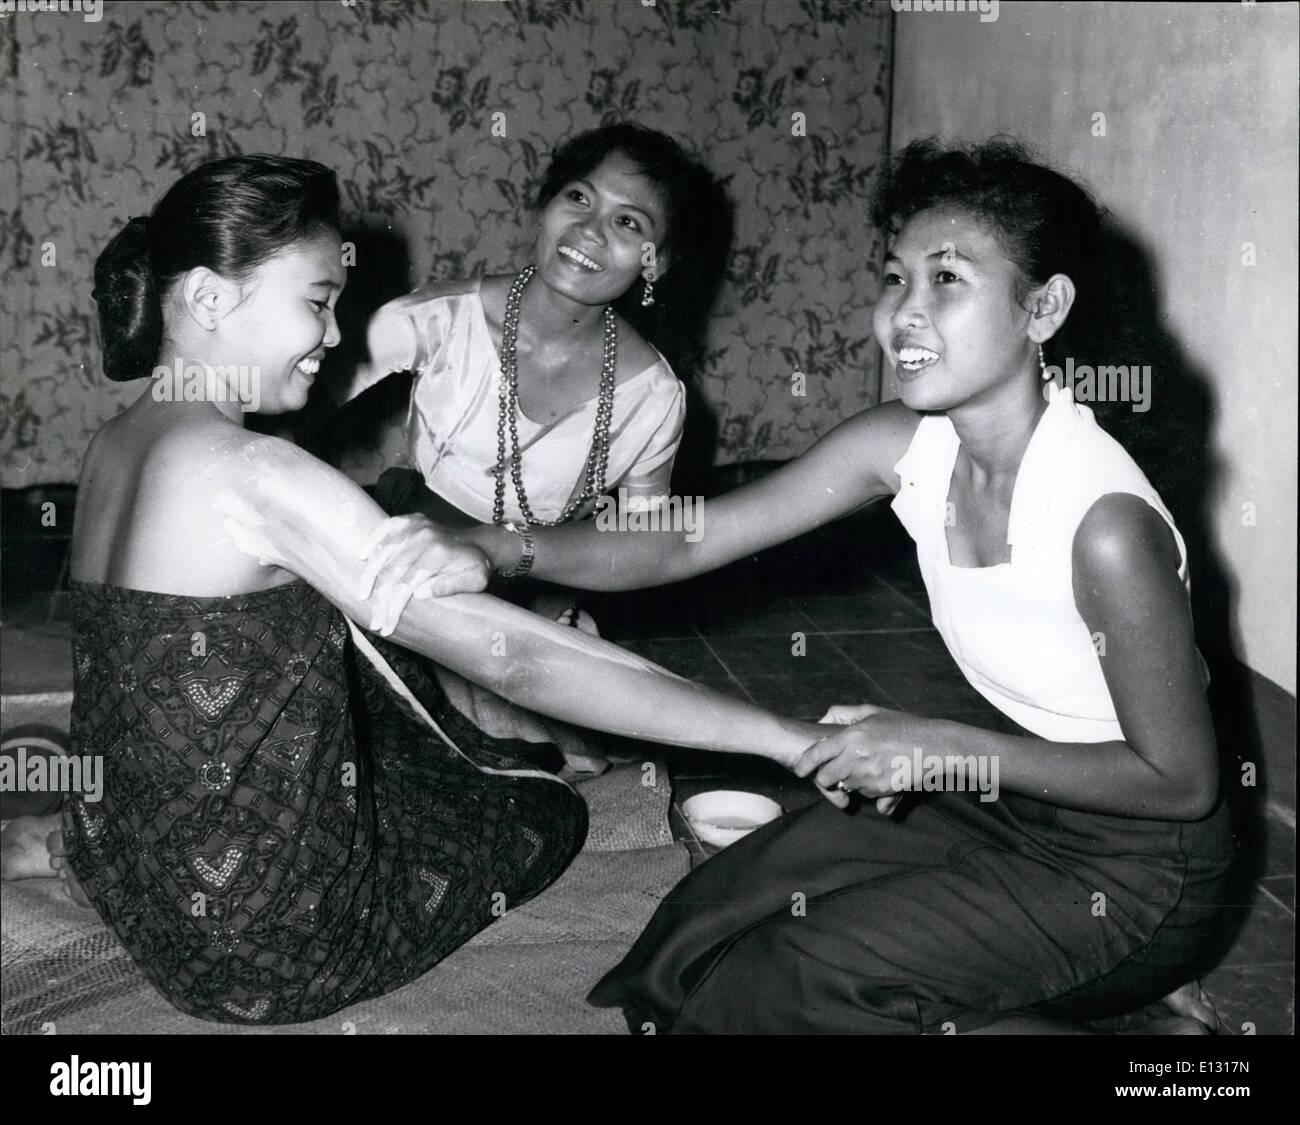 Feb. 26, 2012 - In a Royal dancing school in Indonesia : Pretty princess sri justia , 19, has ''lulur'' smeared on her arms by her co-princesses Sri Hatinah and Amirati. ''Luxlur'' is a native make - up liquid like calomine which makes the skin look whiter. A fair skin is essential to beauty in the East. - Stock Image